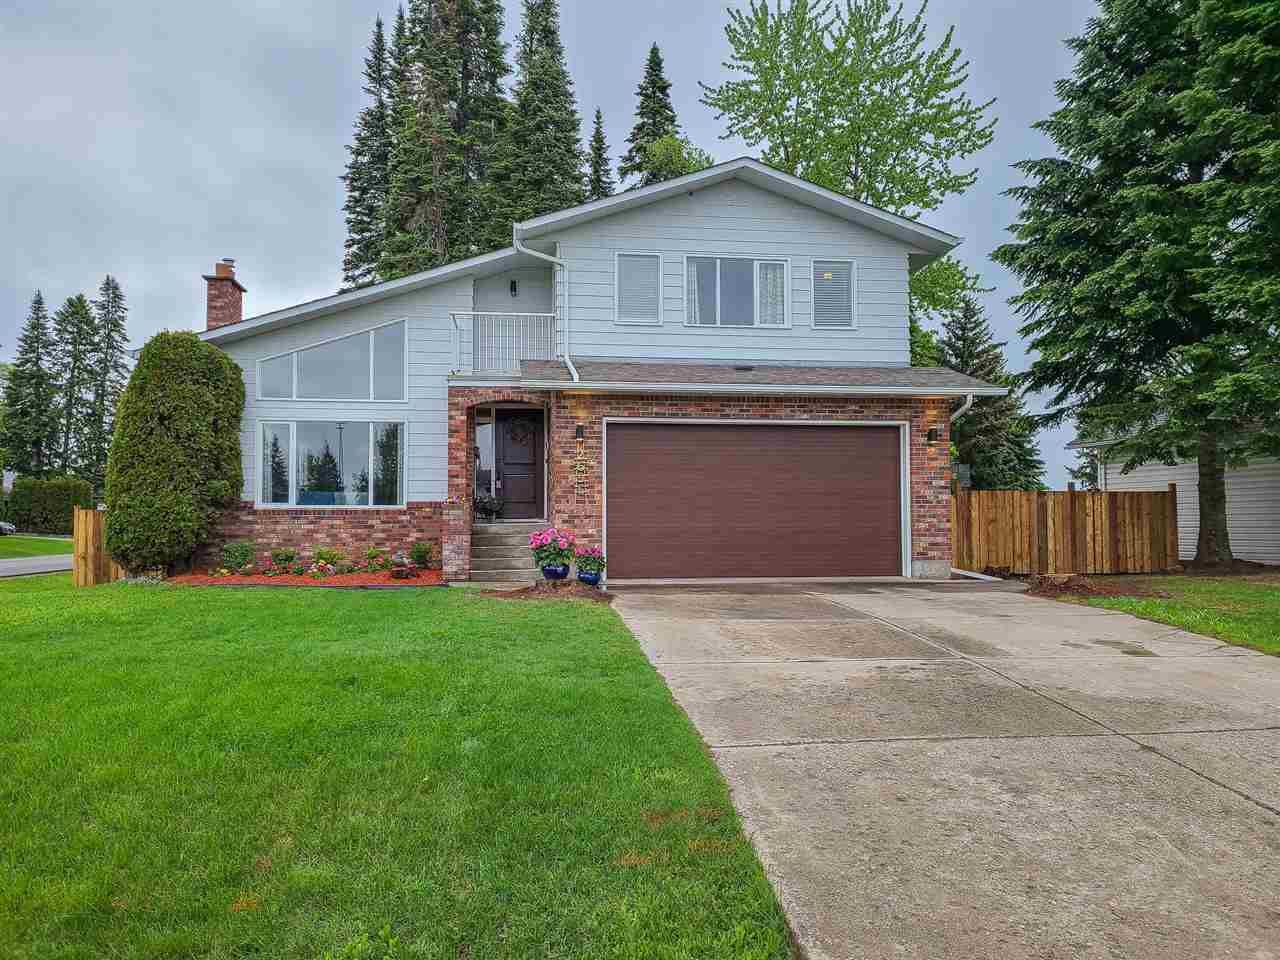 """Main Photo: 2696 CARLISLE Way in Prince George: Hart Highlands House for sale in """"HART HIGHLAND"""" (PG City North (Zone 73))  : MLS®# R2585119"""